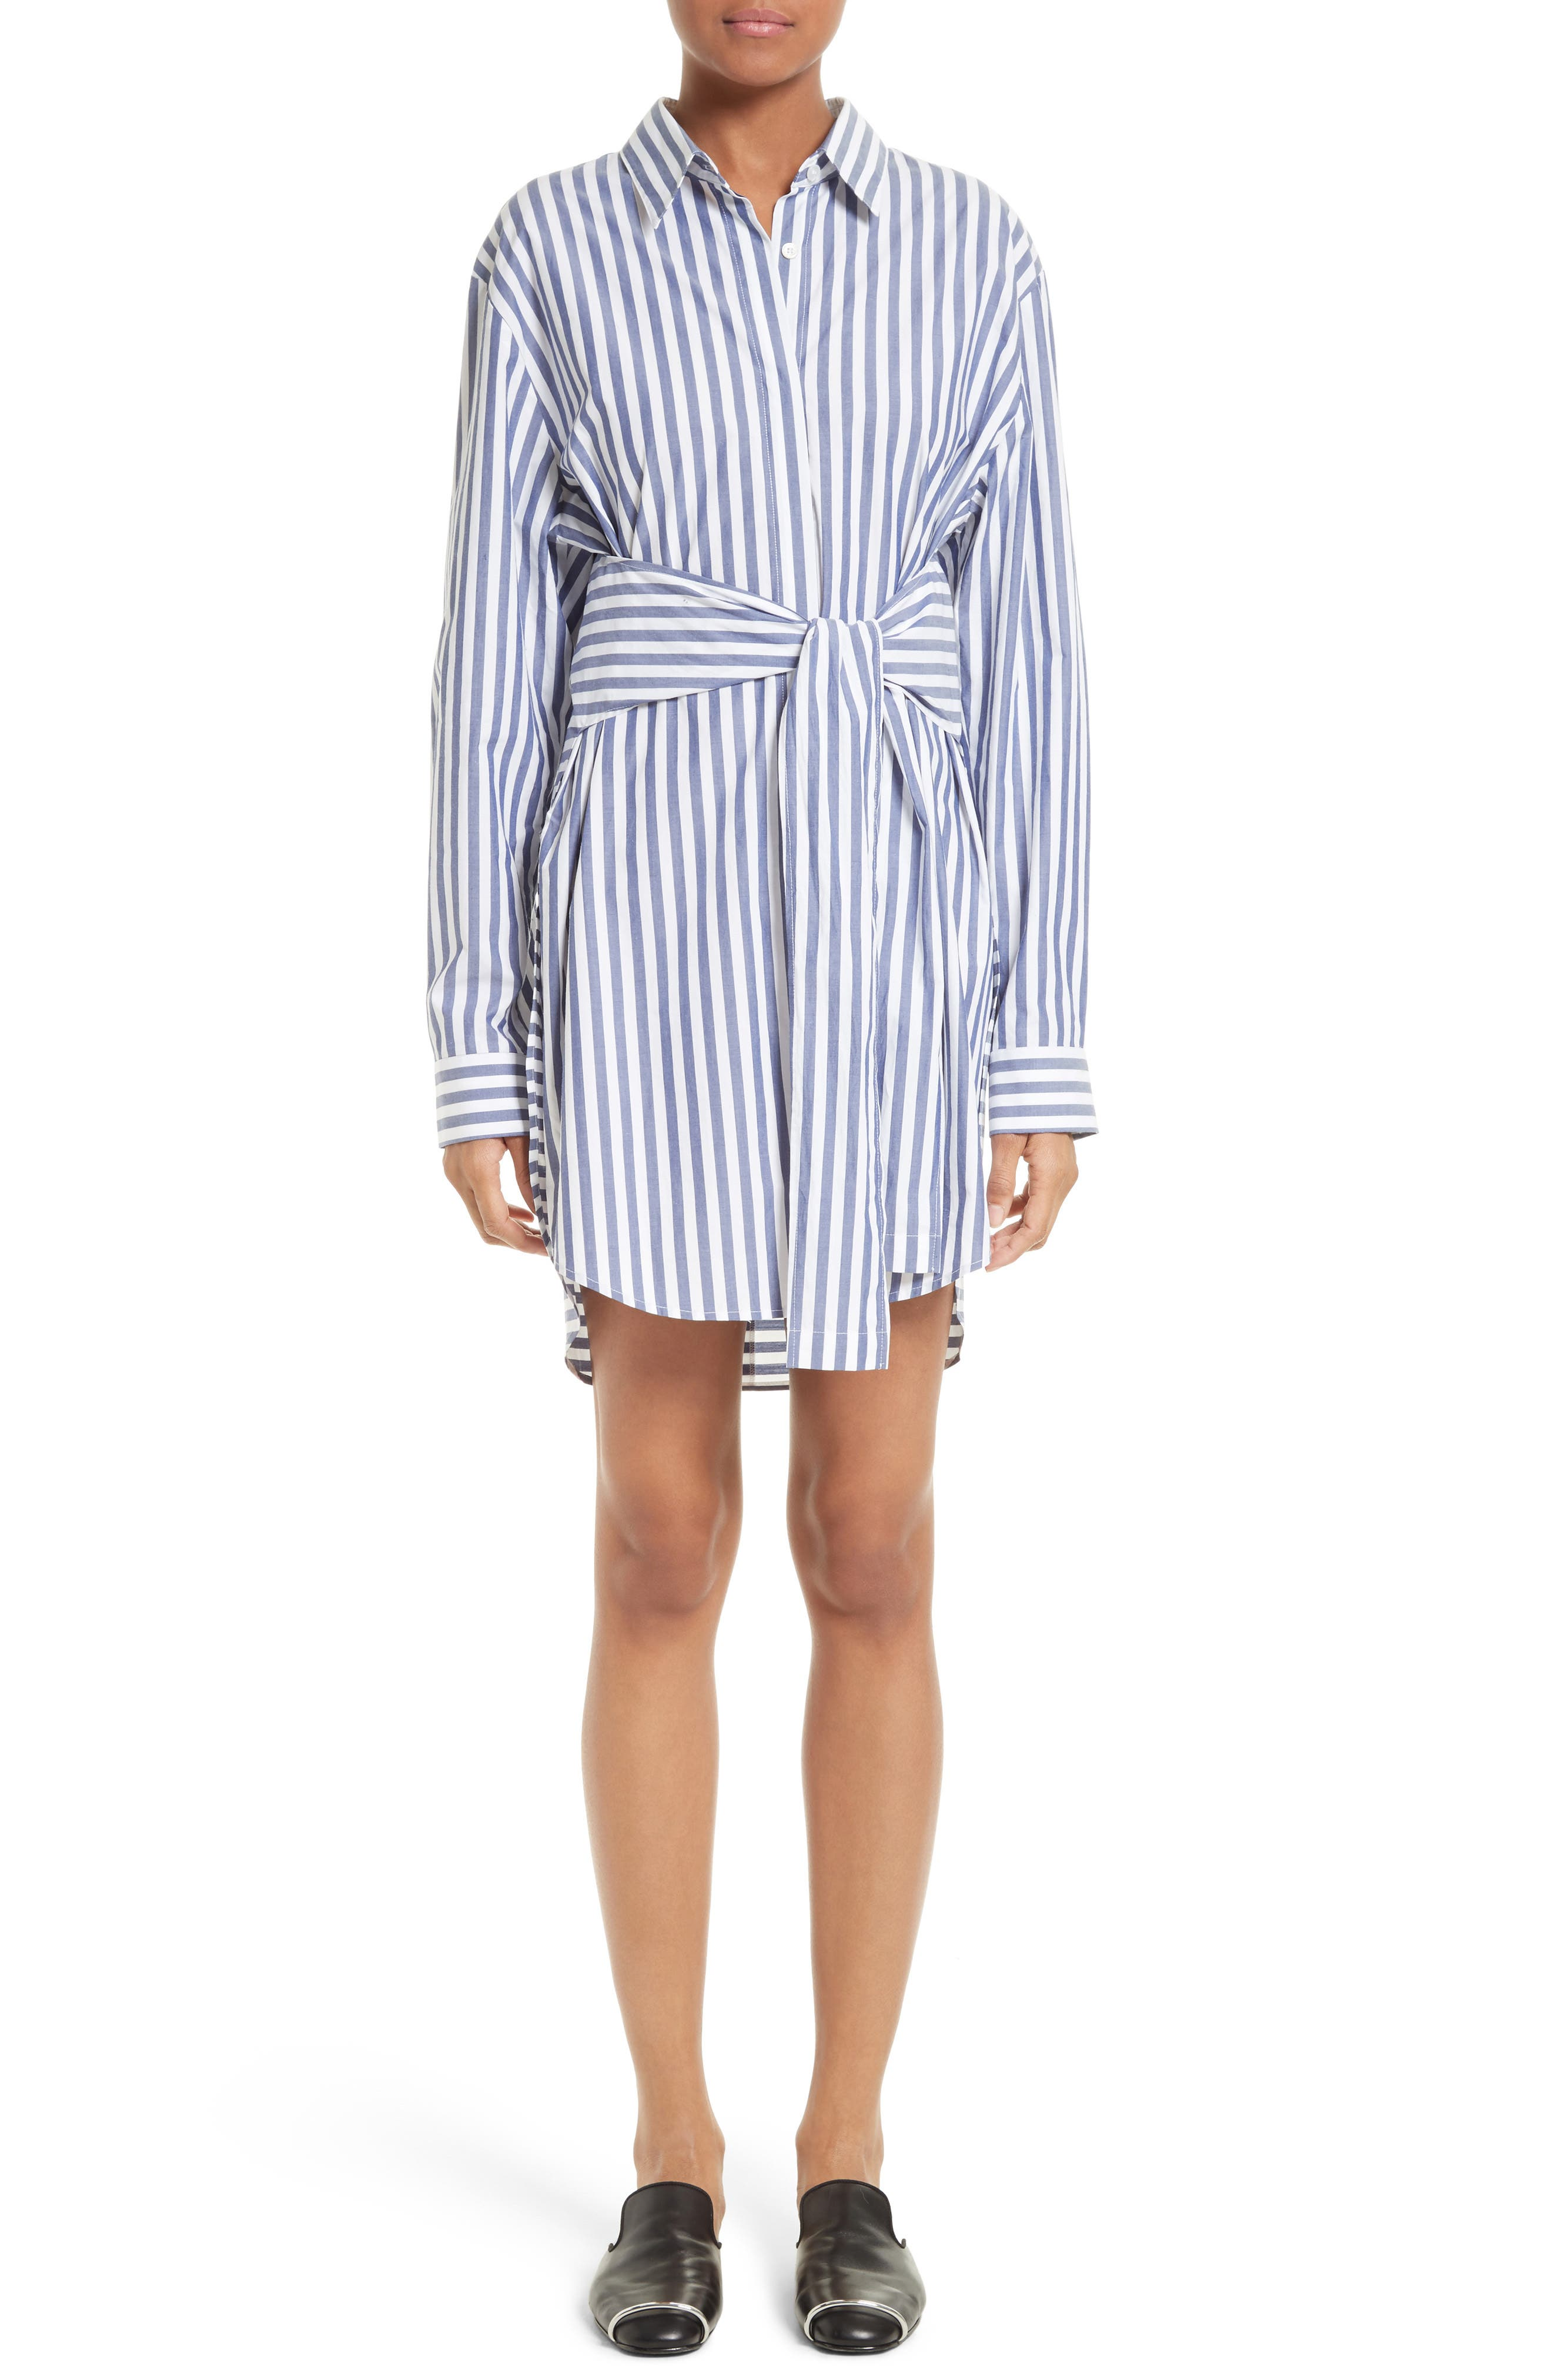 T by Alexander Wang Stripe Tie Front Shirtdress,                             Main thumbnail 1, color,                             150